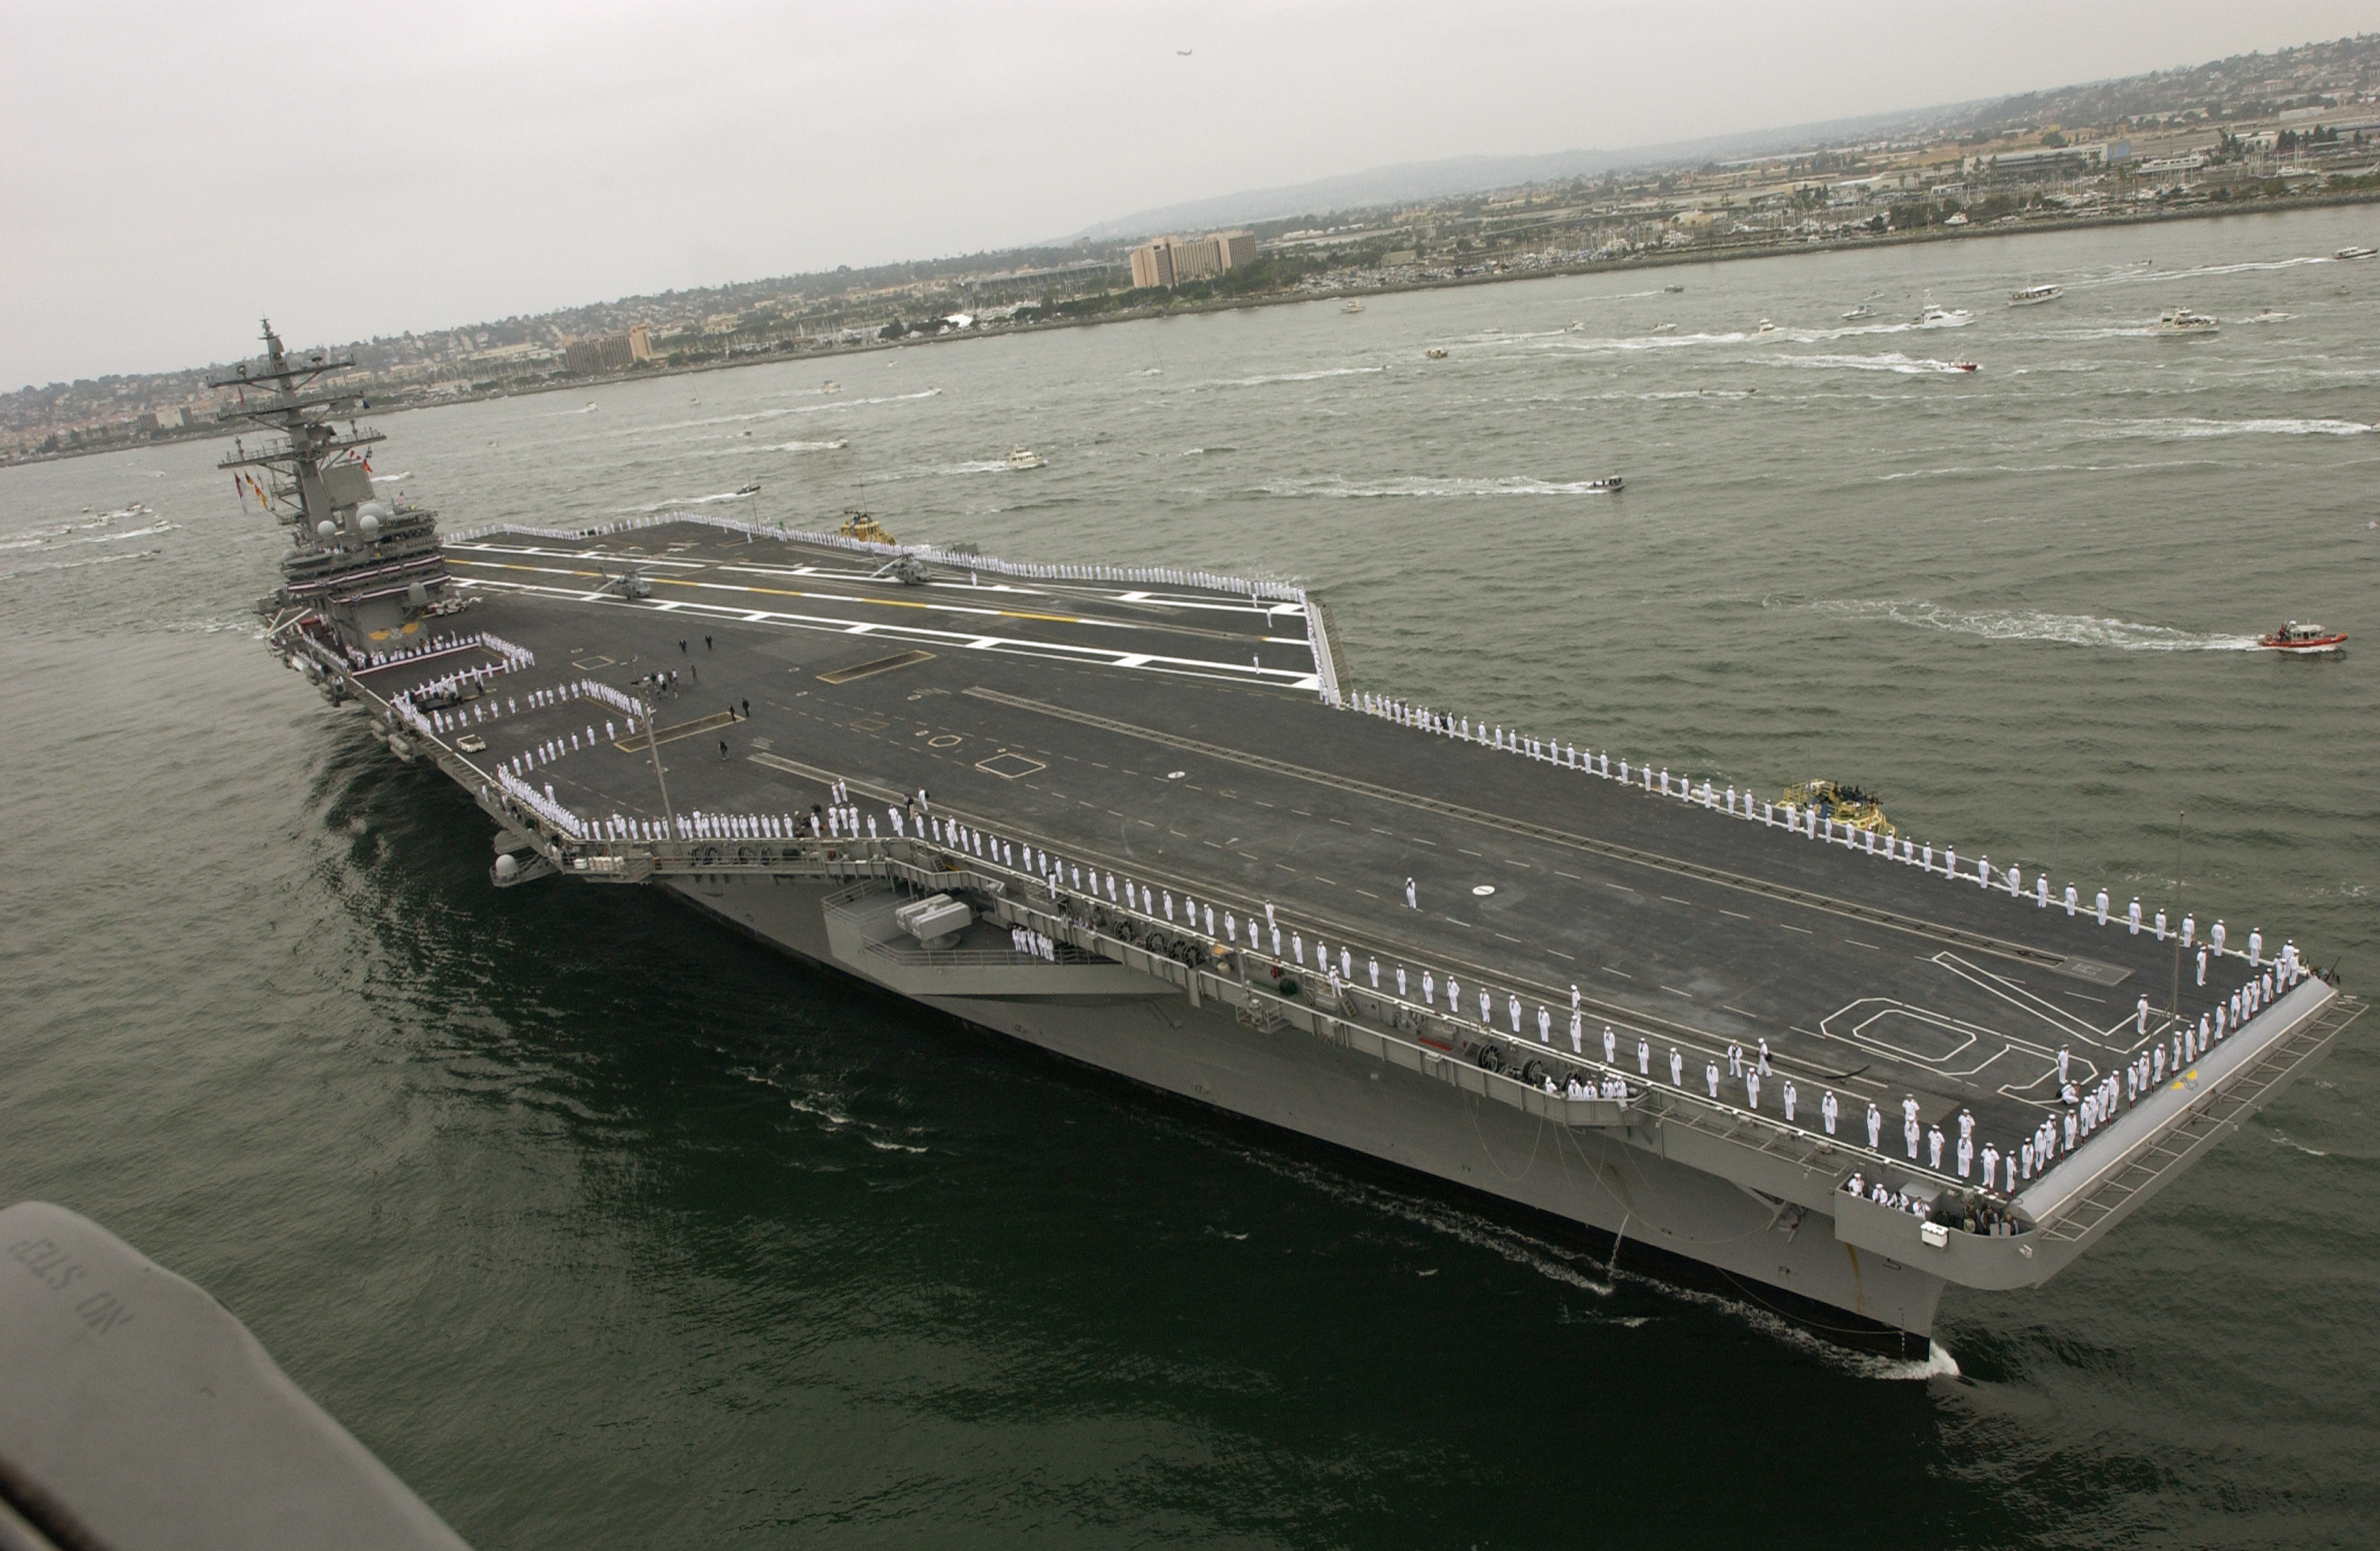 Uss ronald reagan wikipedia download pdf - Portaerei ronald reagan ...